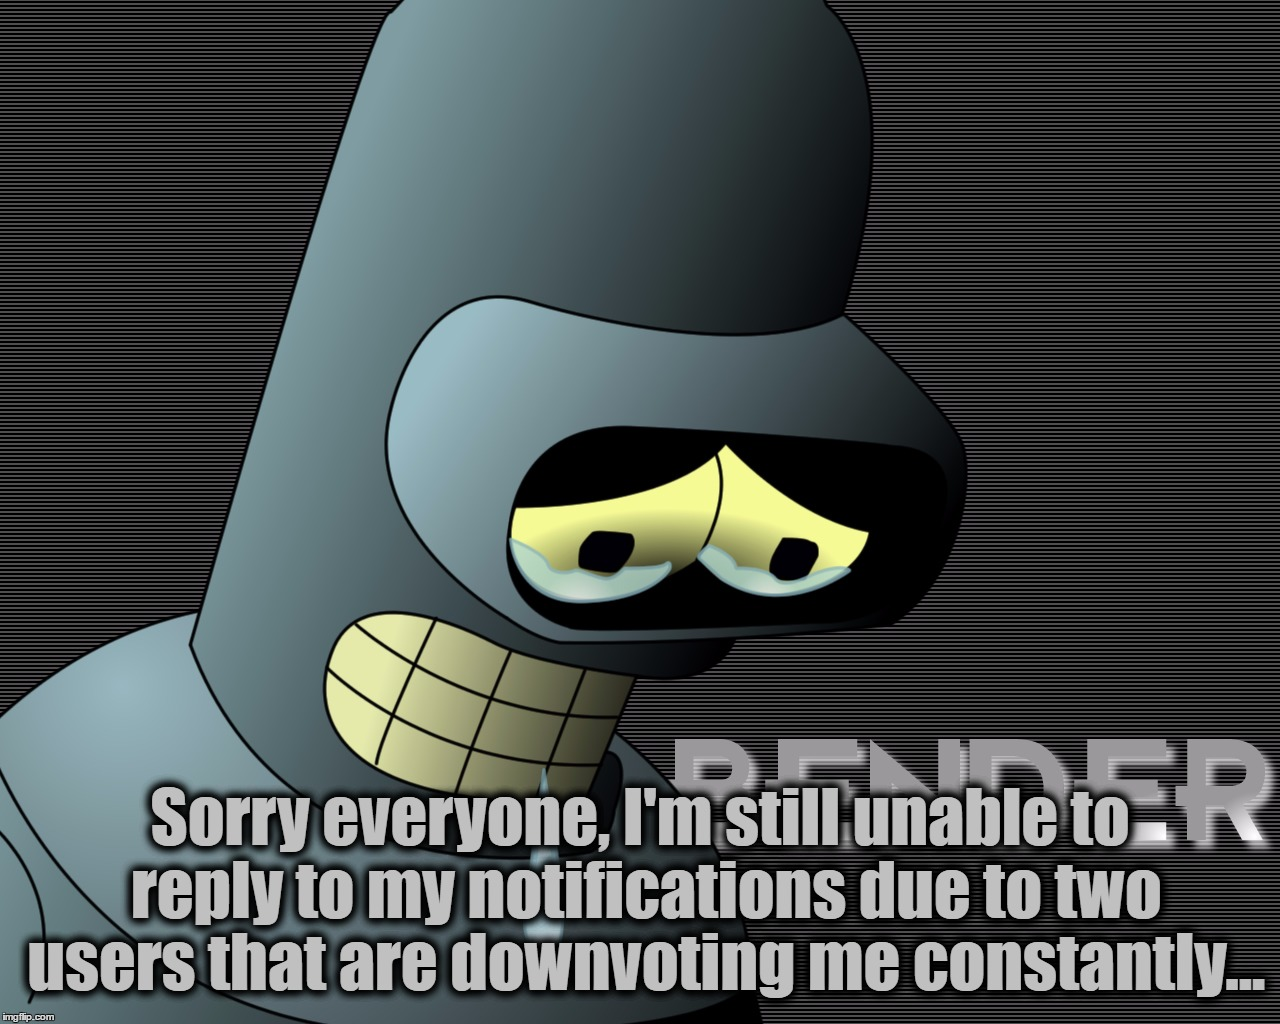 This Is What I Get For Being Political... | Sorry everyone, I'm still unable to reply to my notifications due to two users that are downvoting me constantly... | image tagged in memes,sad,bender,imgflip,political,i just want to reply to my notifications | made w/ Imgflip meme maker